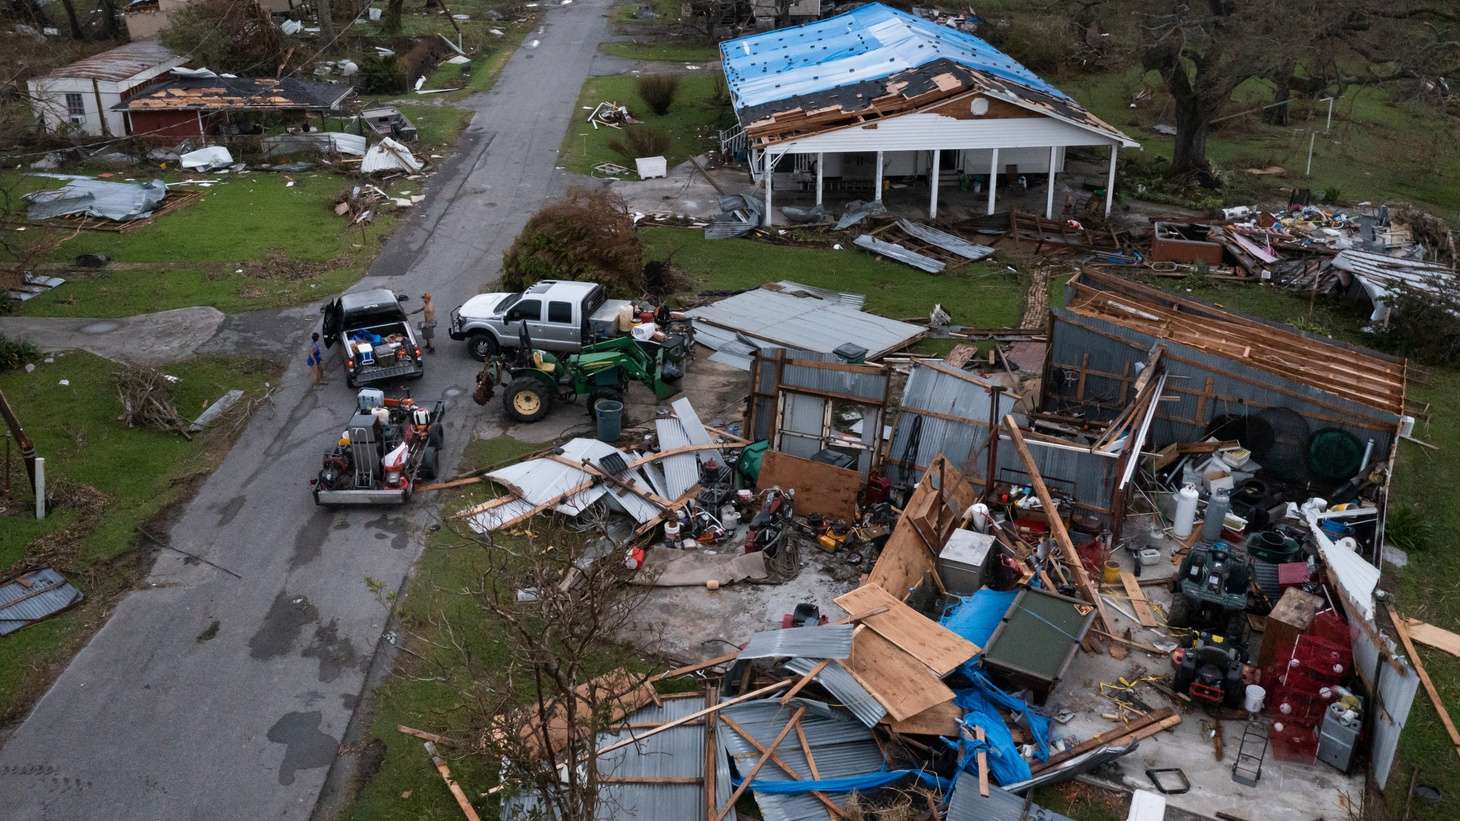 People collect belongings from their damaged property in the aftermath of Hurricane Ida in Golden Meadow, Louisiana, U.S., September 1, 2021.